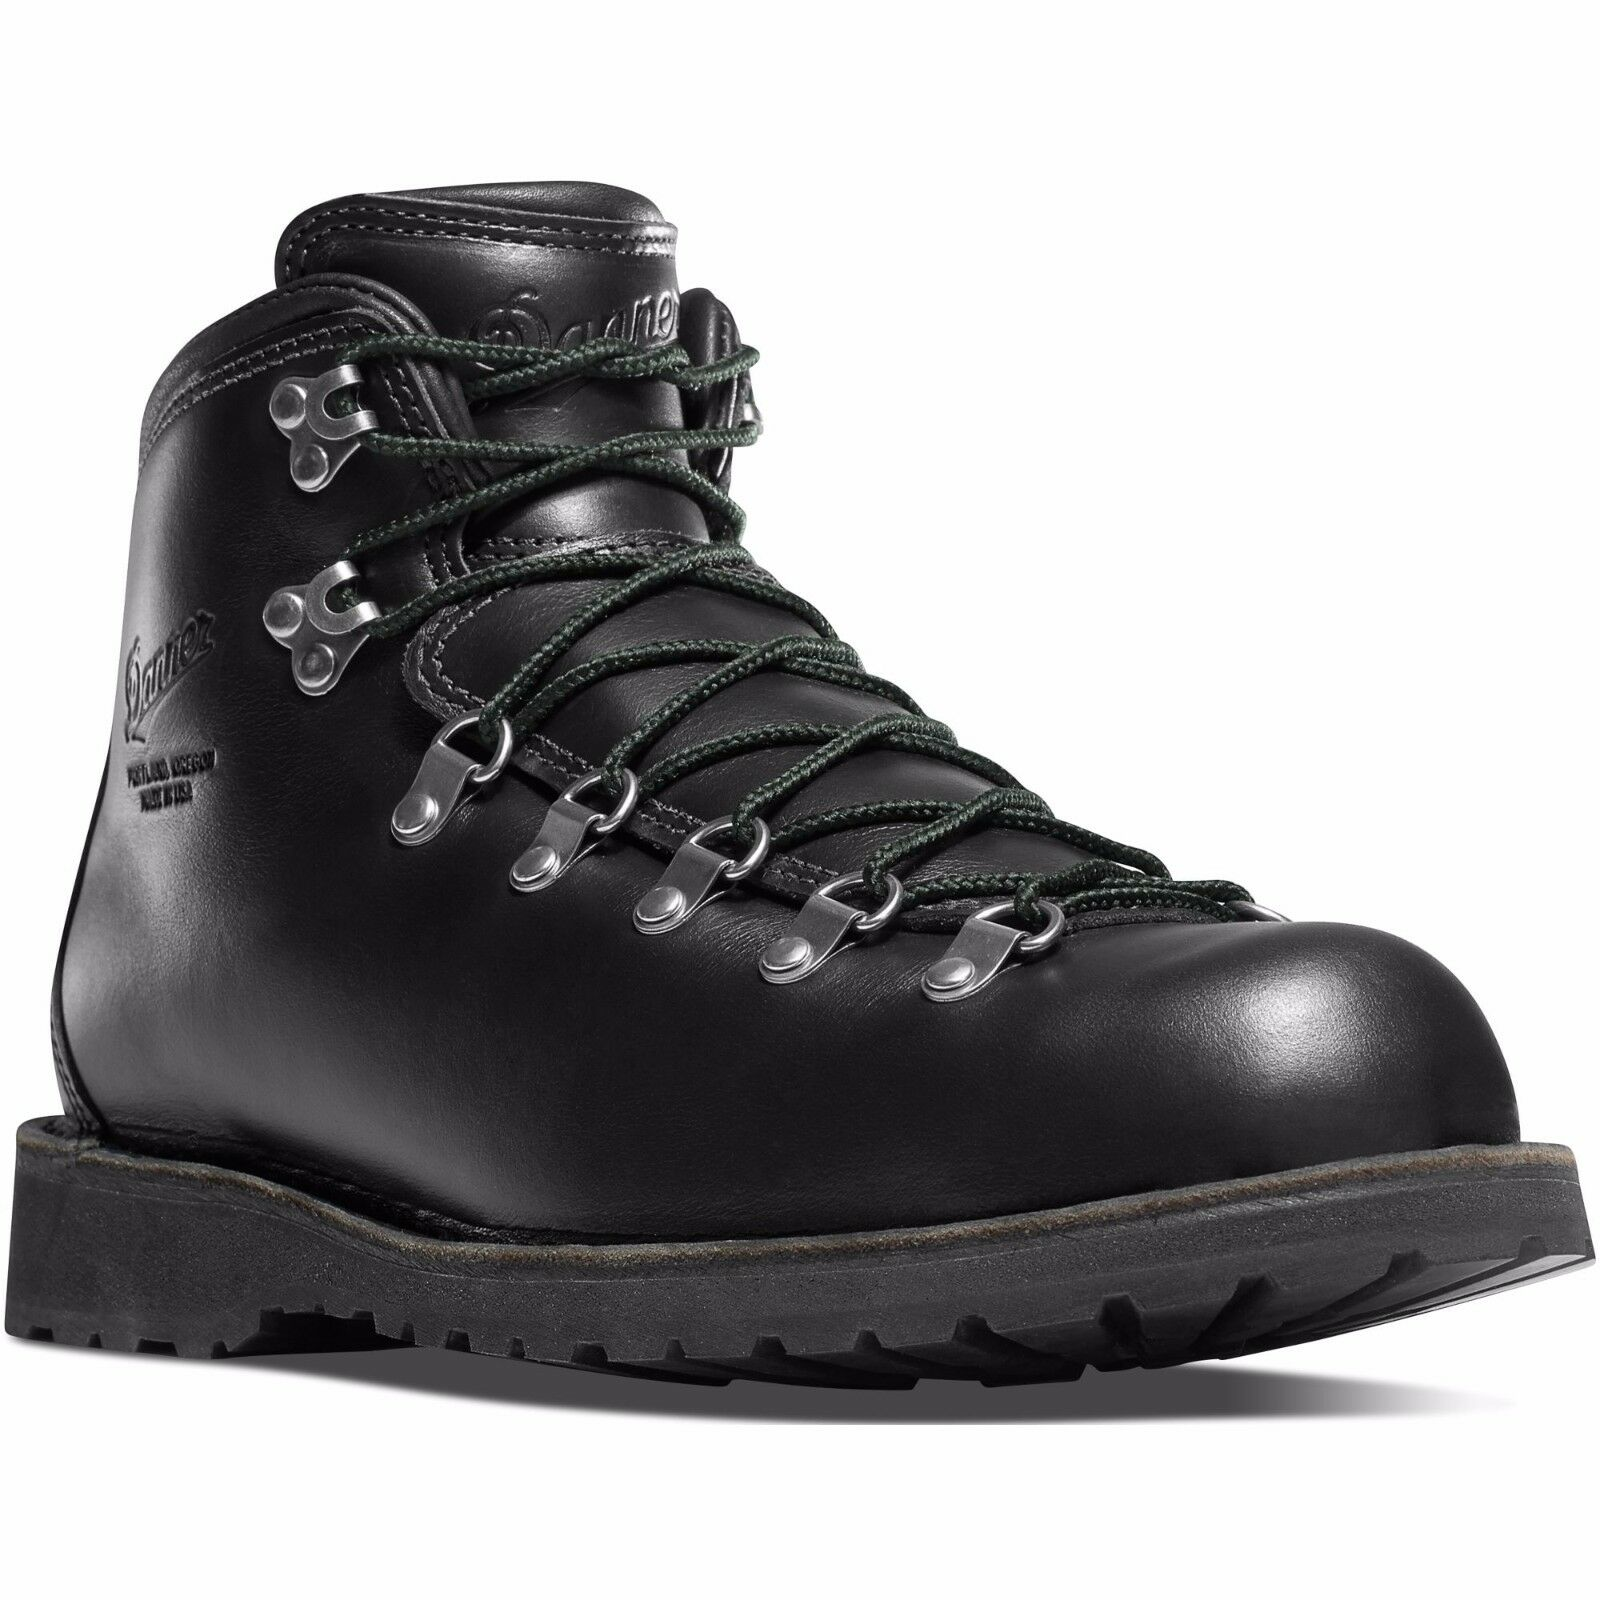 Danner Mountain Pass Gore-Tex Hiking stivali - Dimensione 9.5 Wide - Made in USA